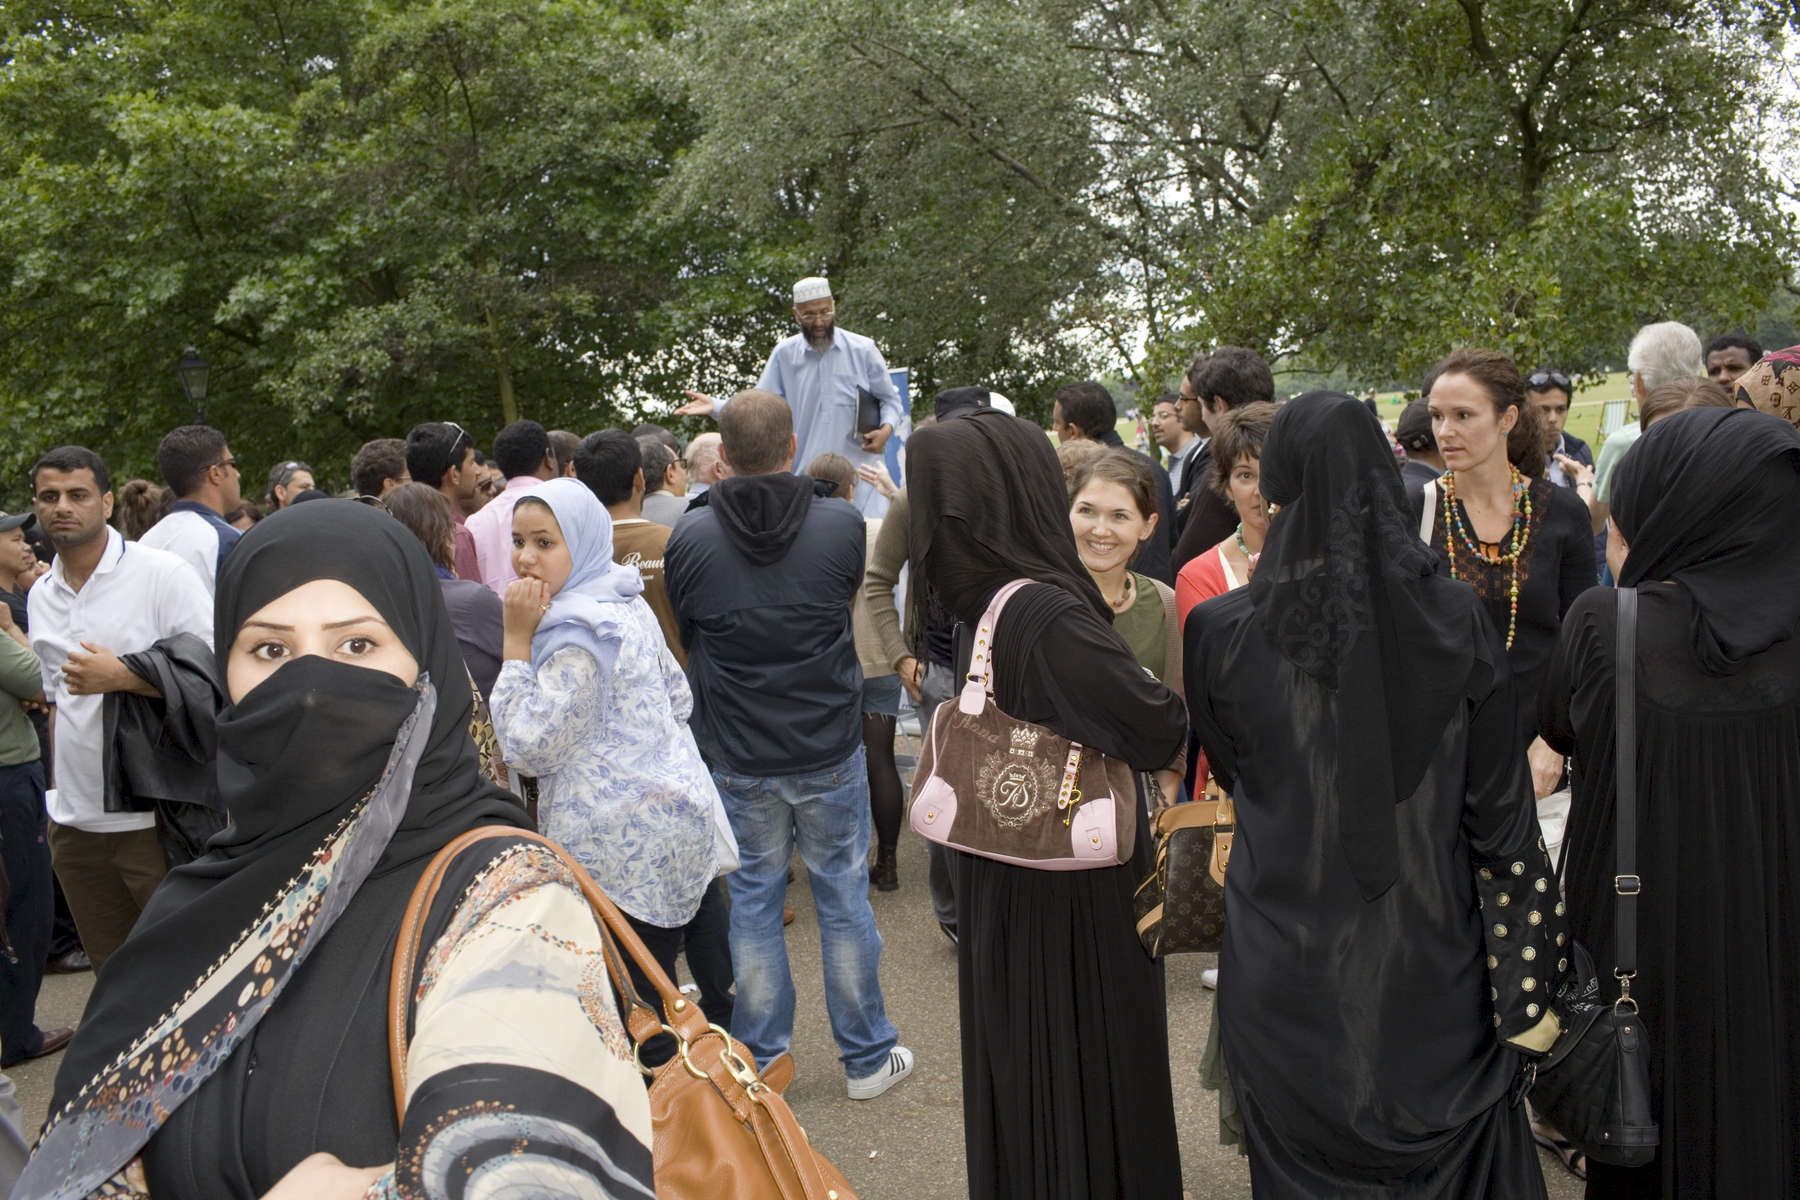 Arab women listen to the various public speaking at Speakers Corner in Hyde Park London.Arabs have been visiting London for centuries and around 300,000 Arabs have chosen to make the capital their home and a further half a million throughout the UK. The number swells significantly from visitors during the summer. Saudi Arabians spend the most on property in London choosing Belgravia, Kenington, Knightsbridge and Holland Park. Arab culture continues to increase in visibility throughout the capital as integration into this most transient of city's continues.©Peter Dench/Reportage by Getty Images